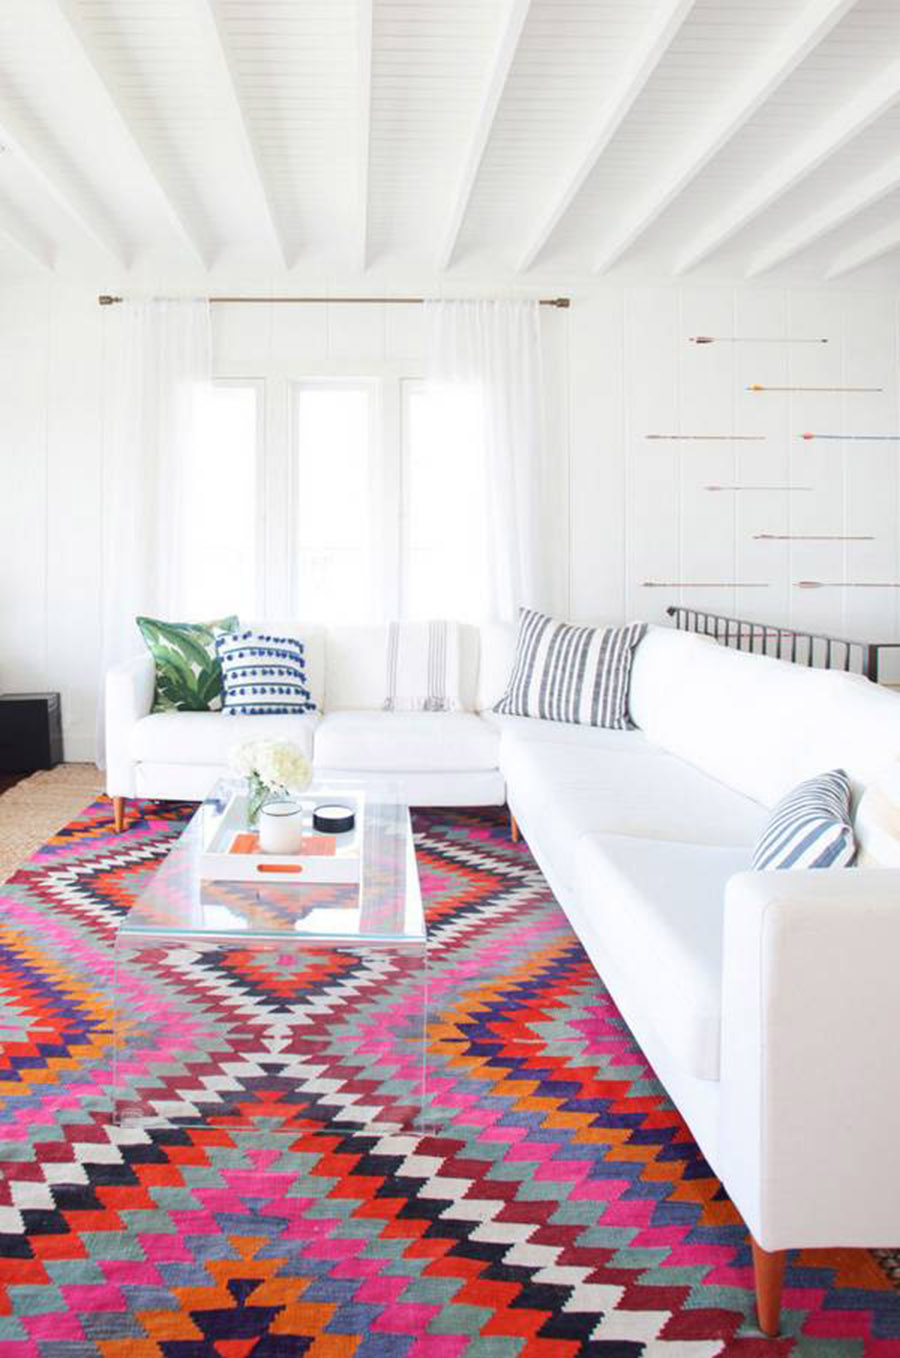 Home Tour, House Inspiration, Decorating, Interior Design, Living Room, Colorful Rug